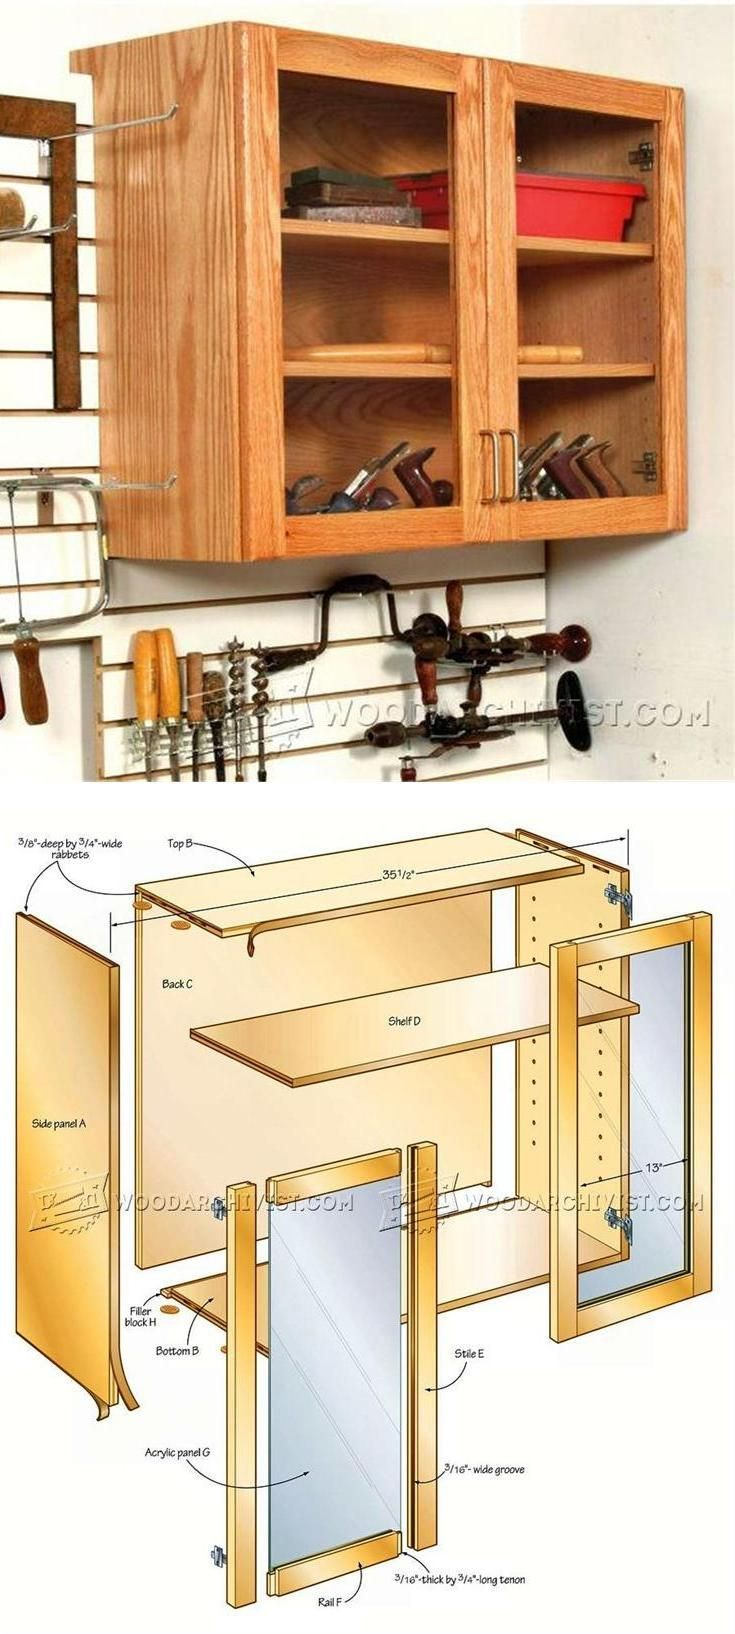 Hand Tool Wall Cabinet Plans - Workshop Solutions Plans, Tips and Tricks   WoodArchivist.com